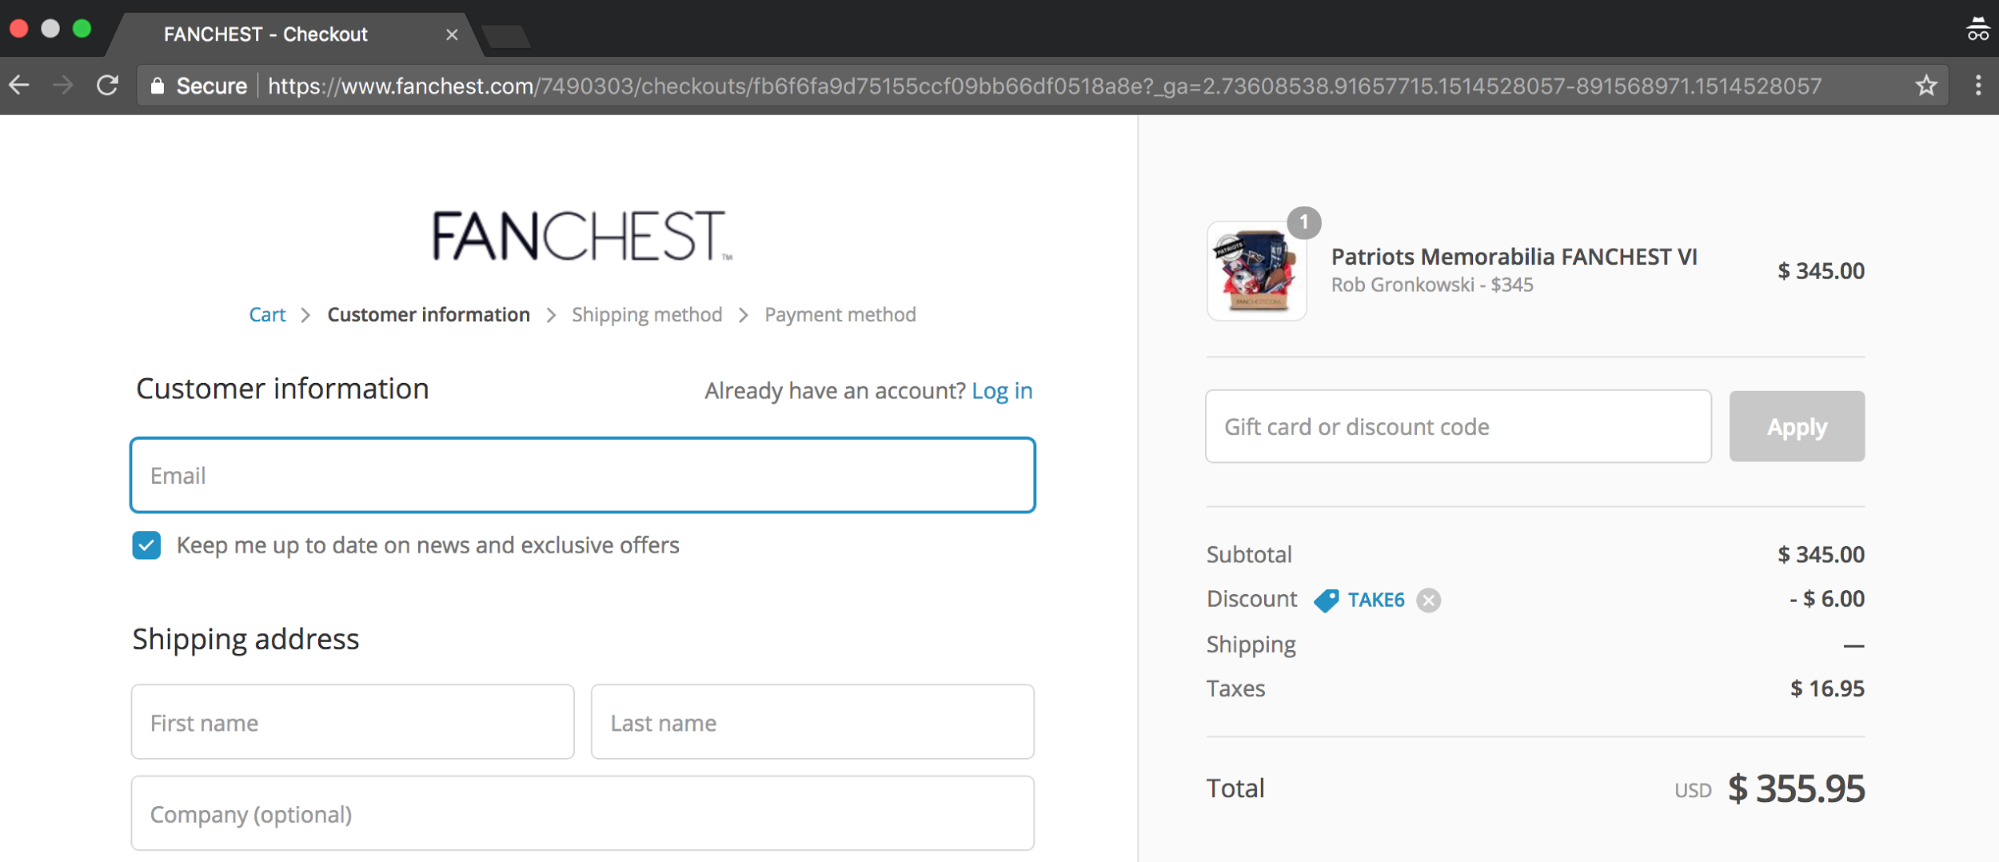 Screenshot showing a checkout page